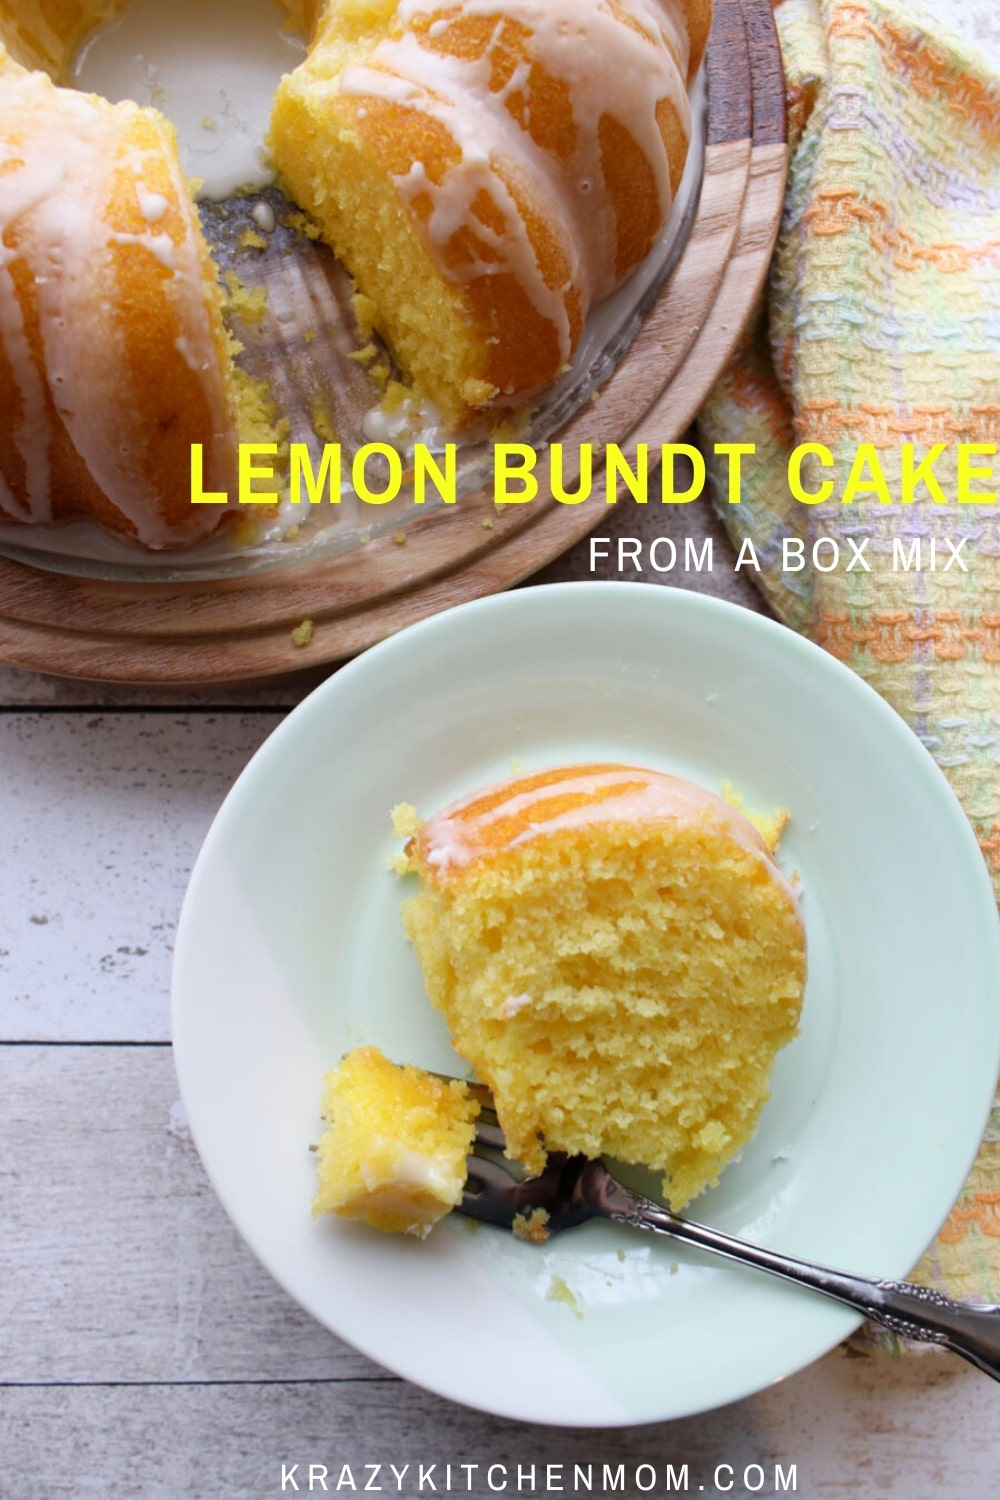 Calling all my lemon lovers! I have the lemon bundt cake recipe of your dreams. The ultimate dessert recipe for anyone who loves the flavor of lemon.